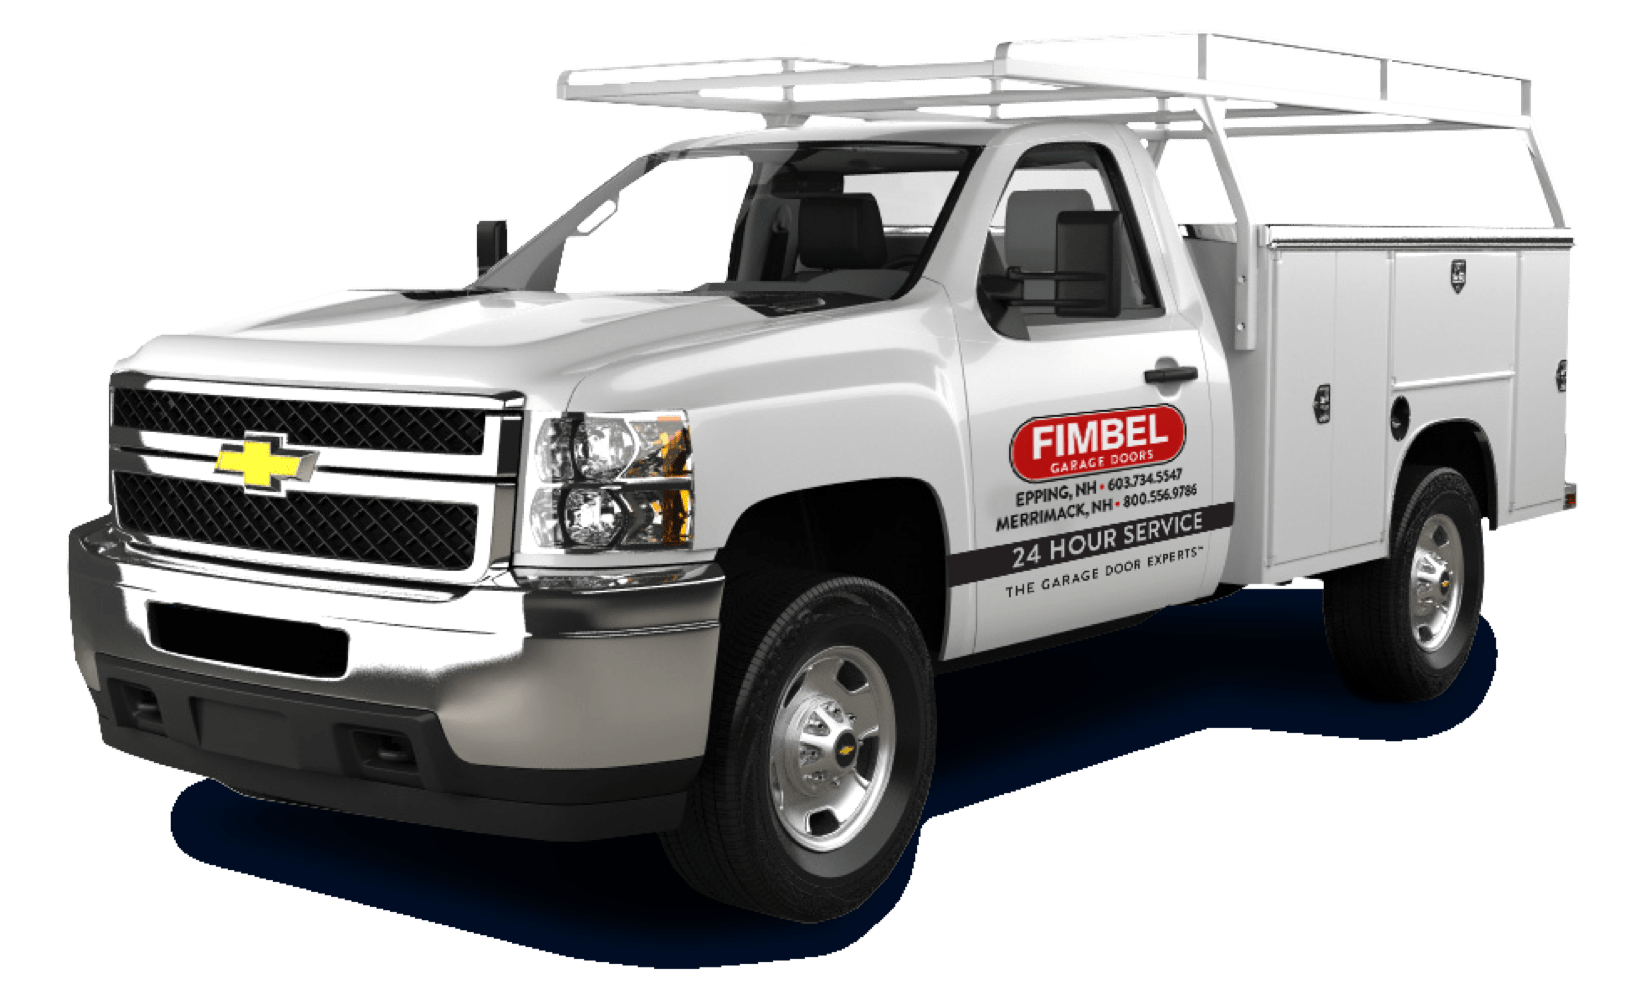 Fimbel Garage Door Work Truck